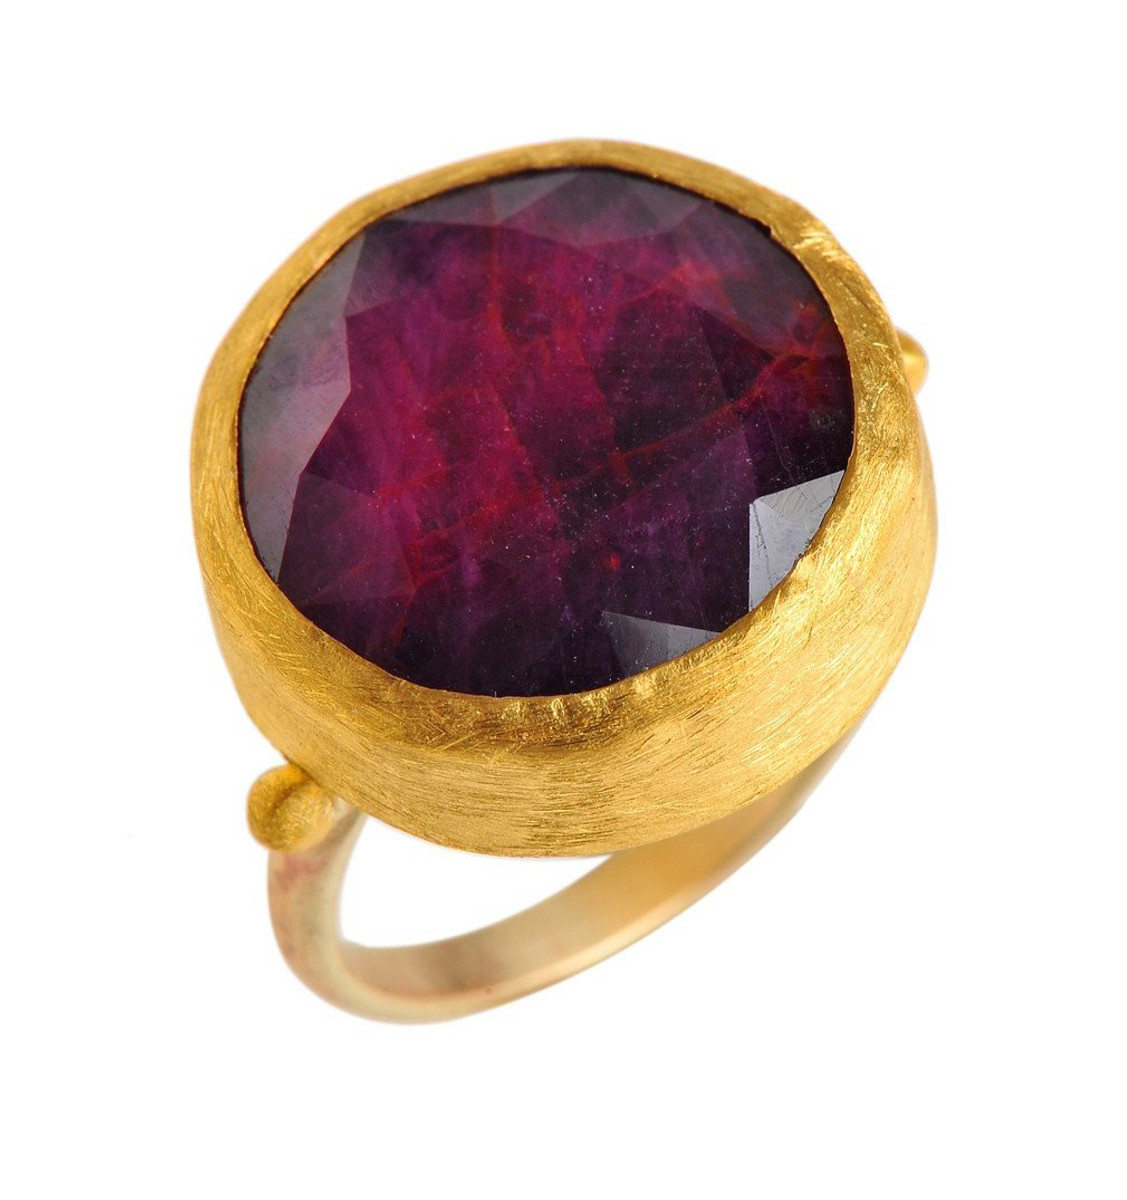 Faceted Ruby Gold Ring by Nava Zahavi - New Arrival